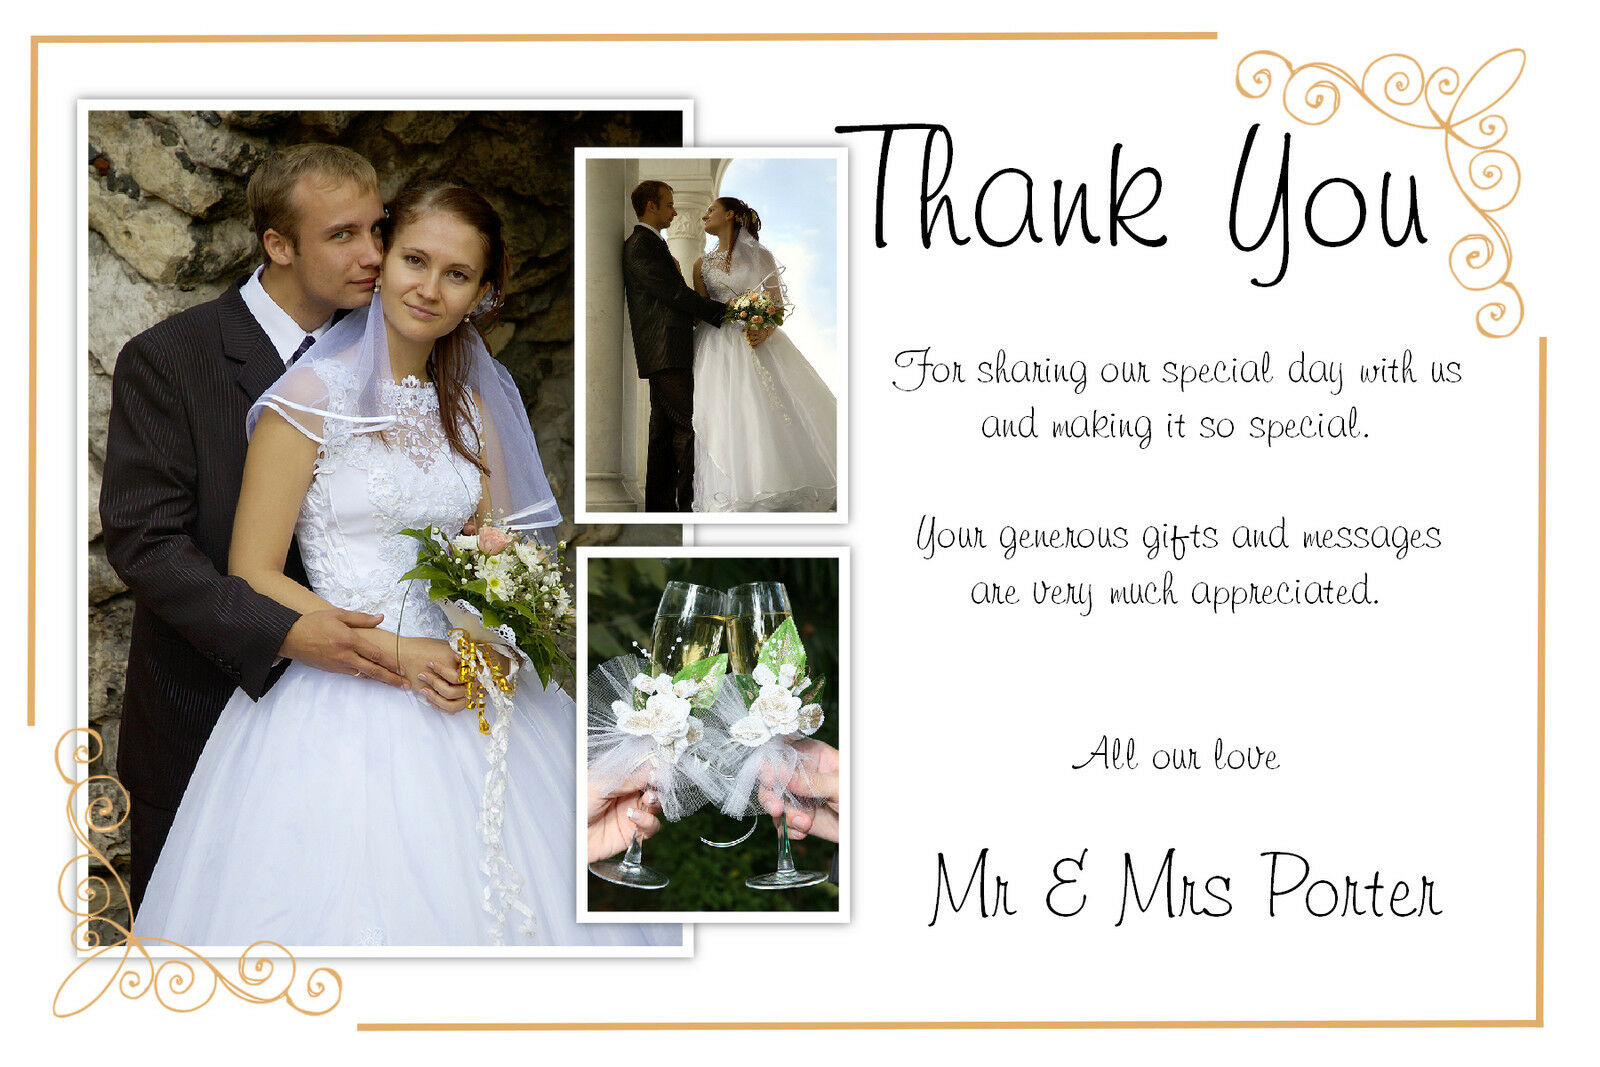 Wedding Gift Thank You Note: How Should I Word A Thank You Note For A Gift From Someone